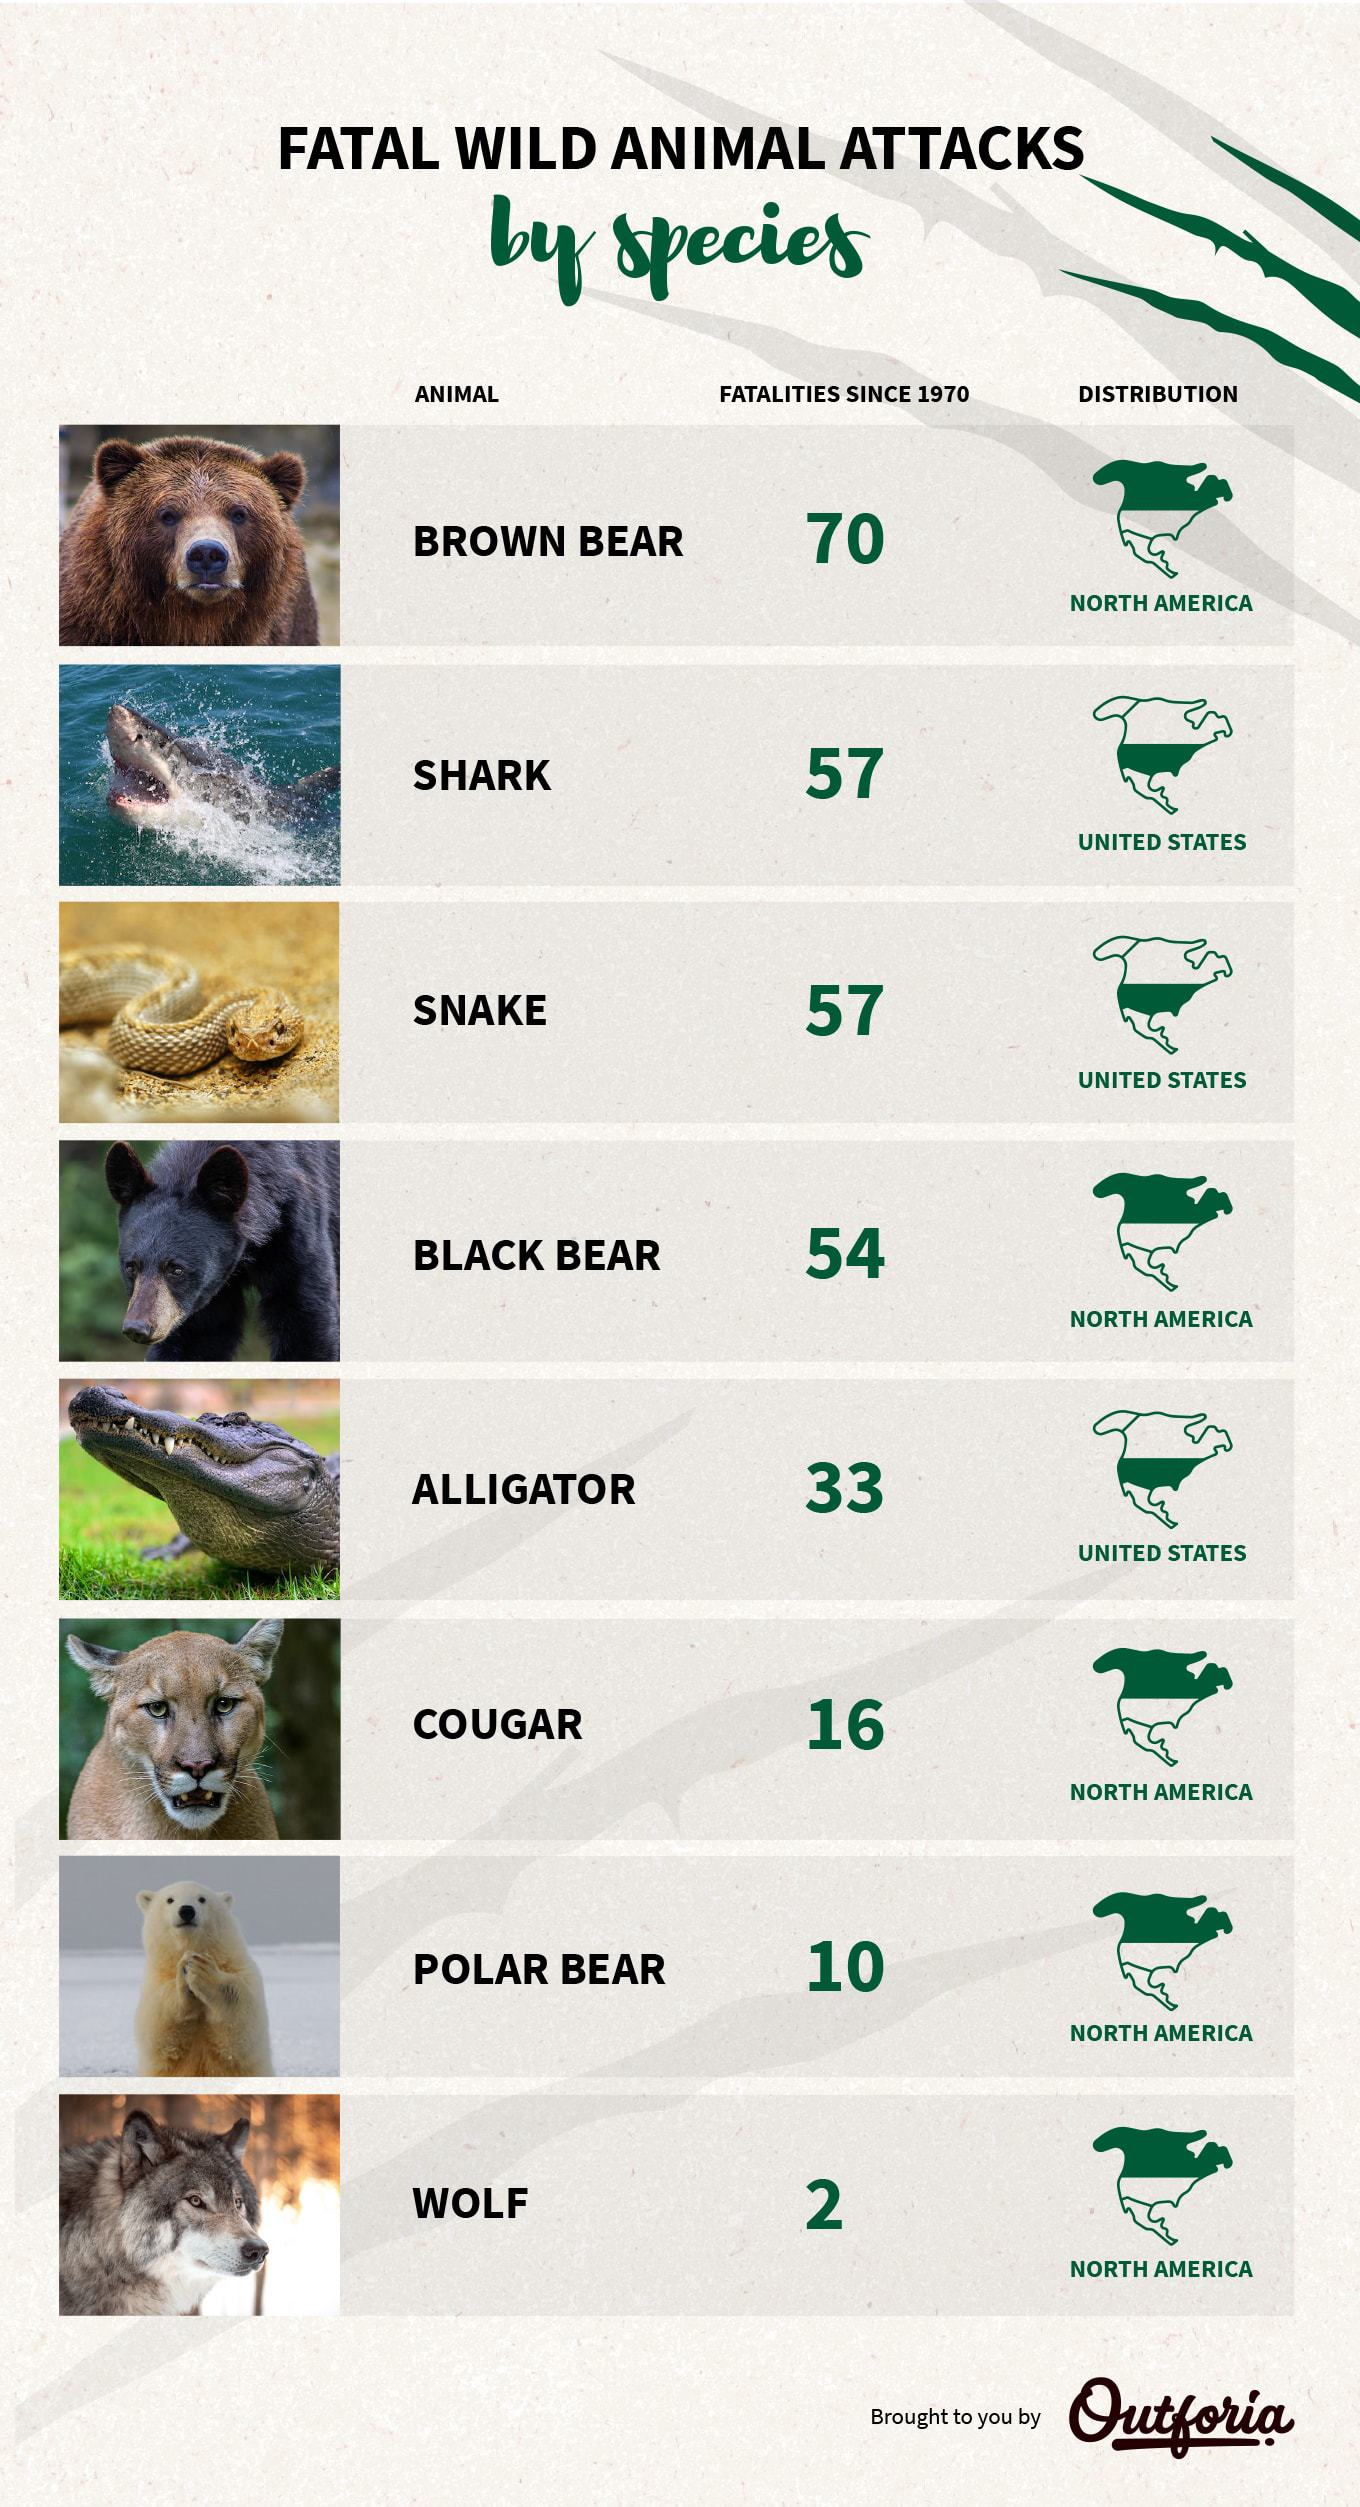 Fatal wild animal attacks by species infographic